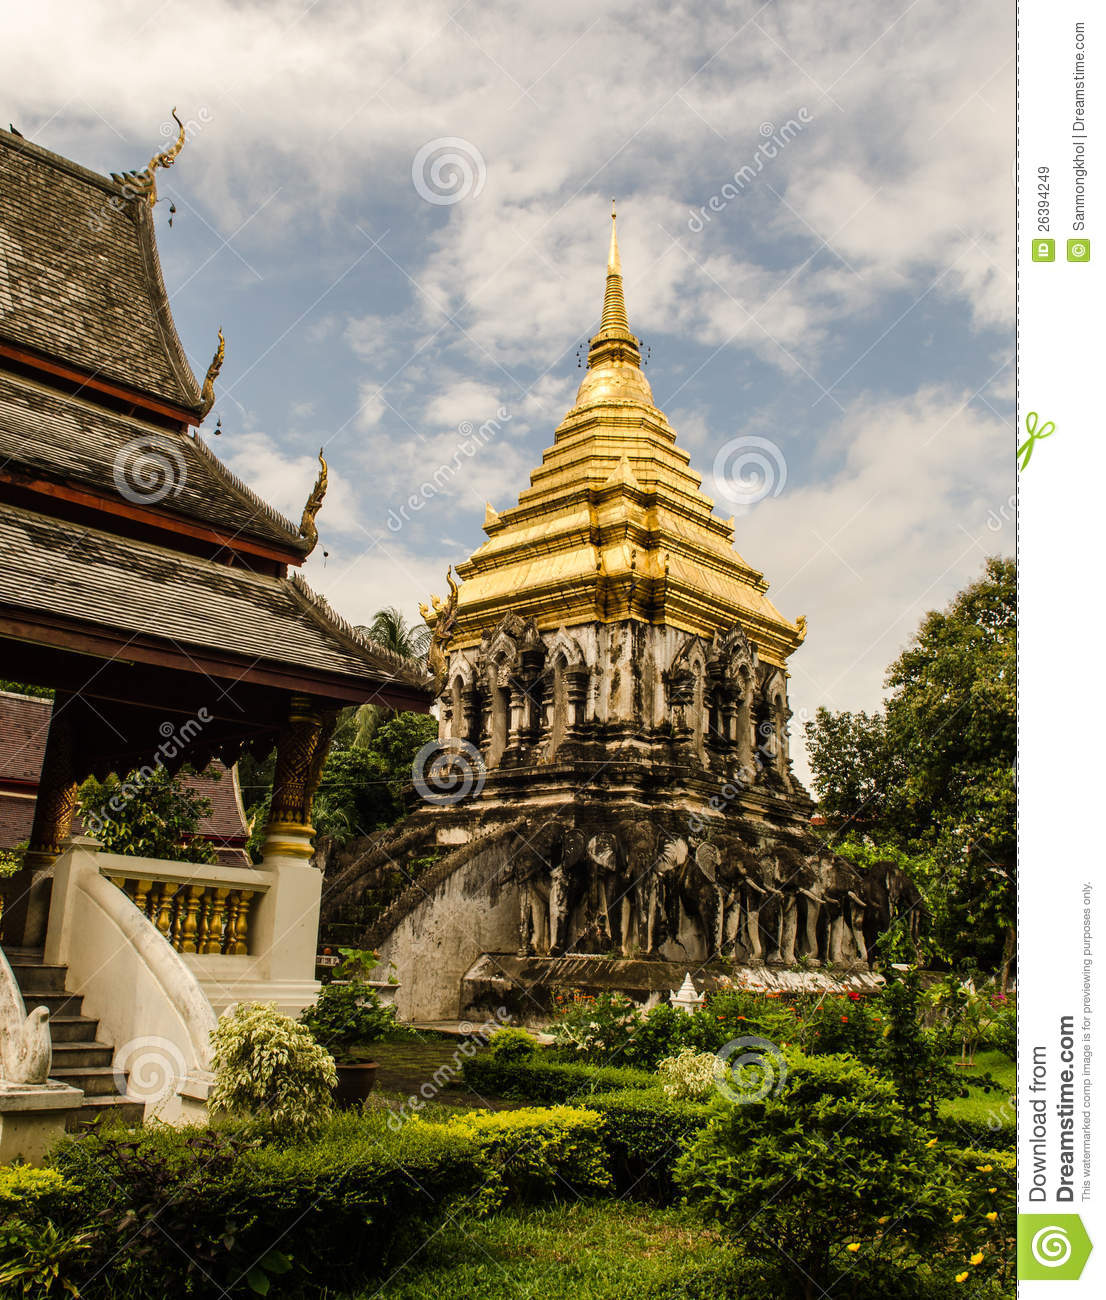 Thailand Architecture: Ancient Temple In Chiangmai Thailand. Stock Image